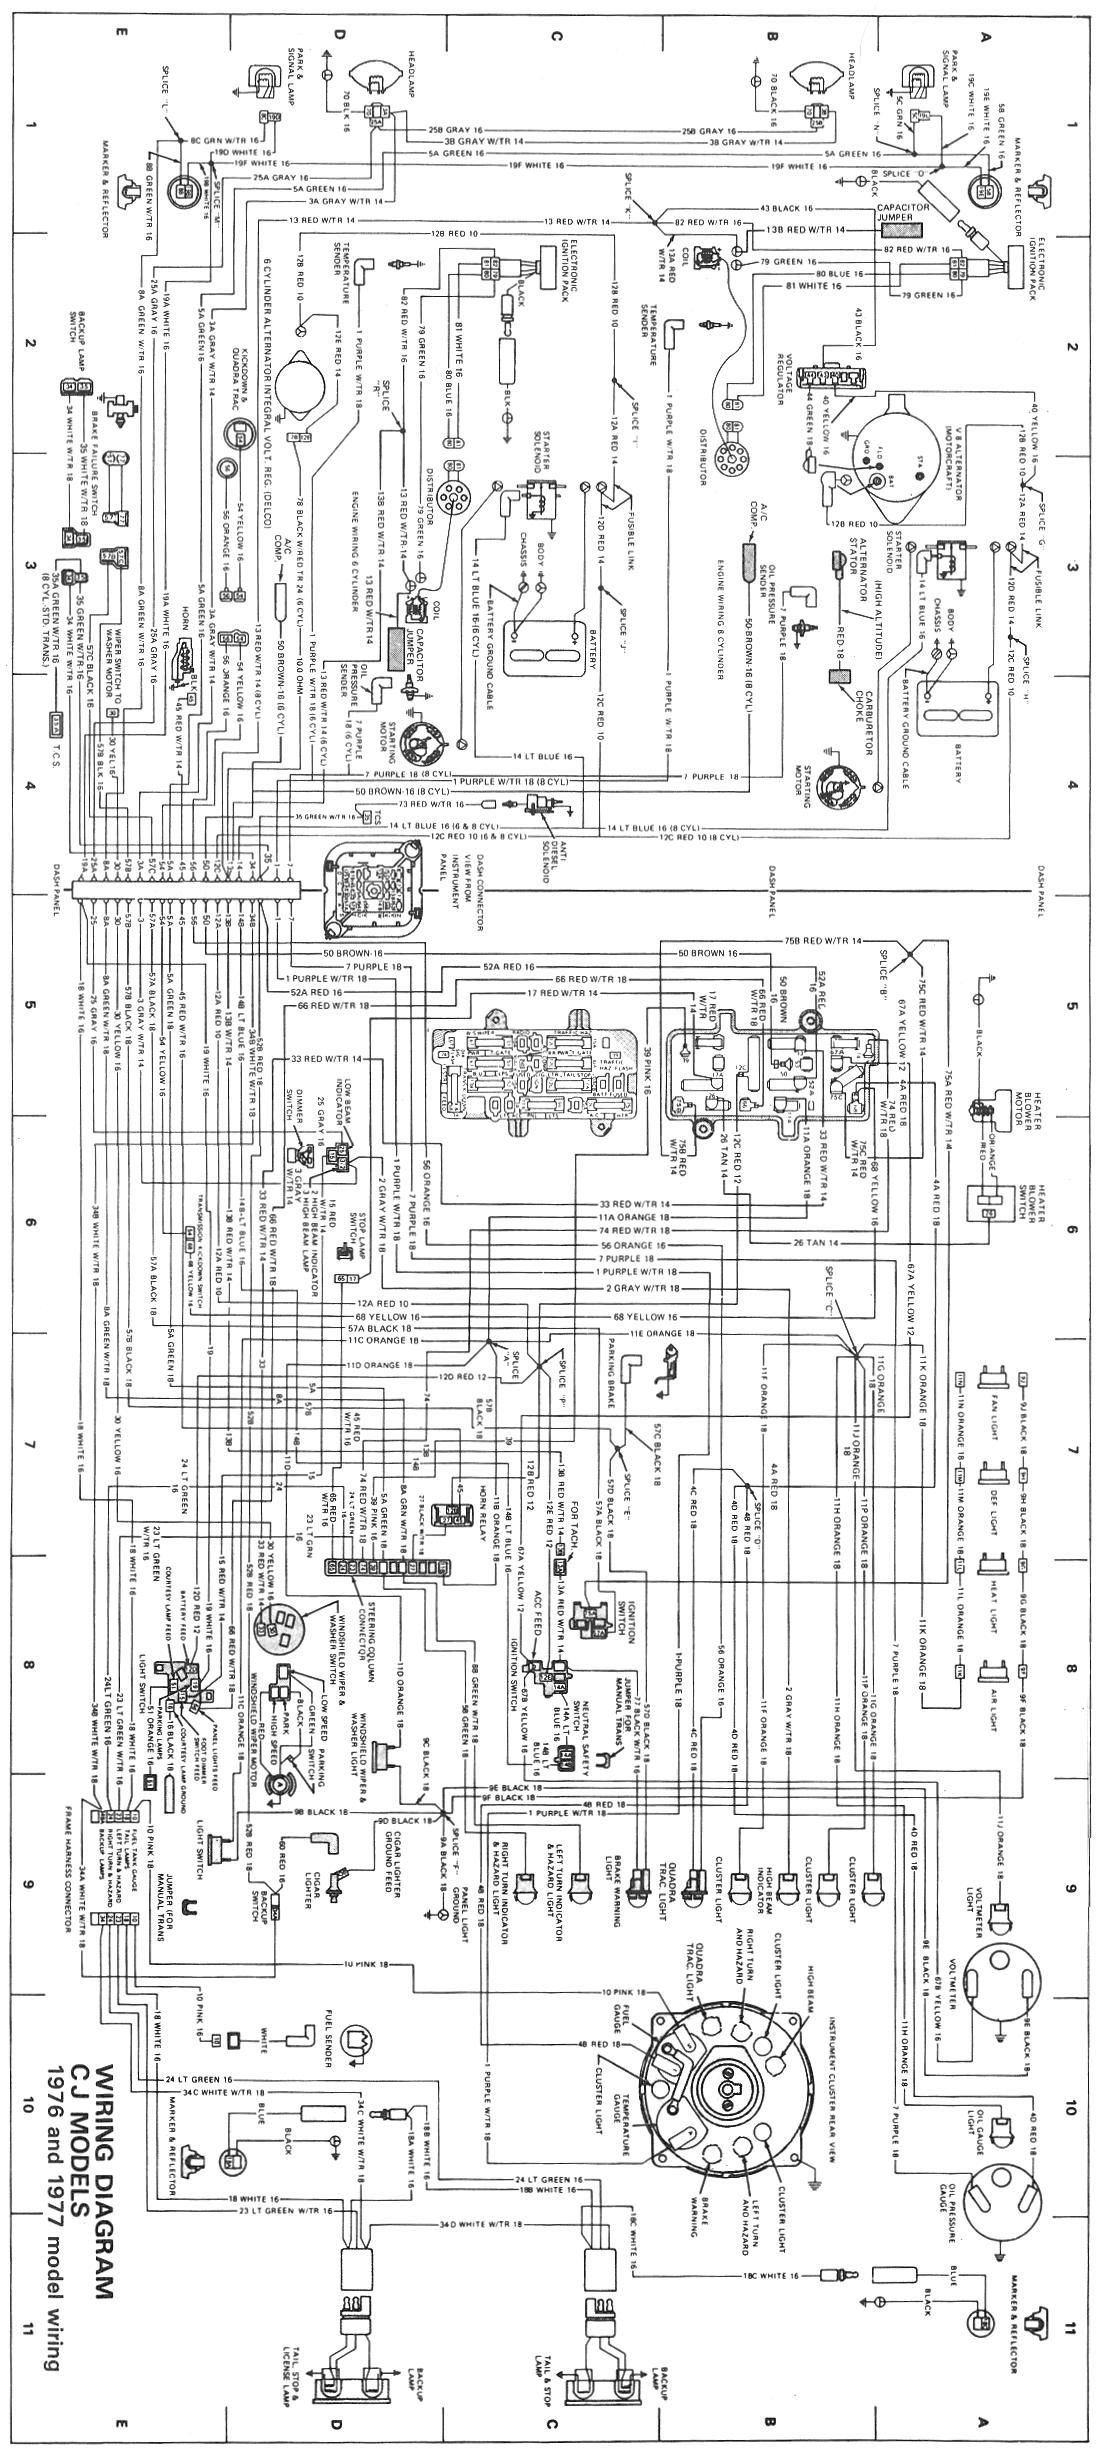 8d25ded6e3673519e155875e09844e5e cj wiring diagram 1976 1977 jpg 1,100�2,459 pixels 1976 jeep cj5 1974 scout ii wiring diagrams at soozxer.org